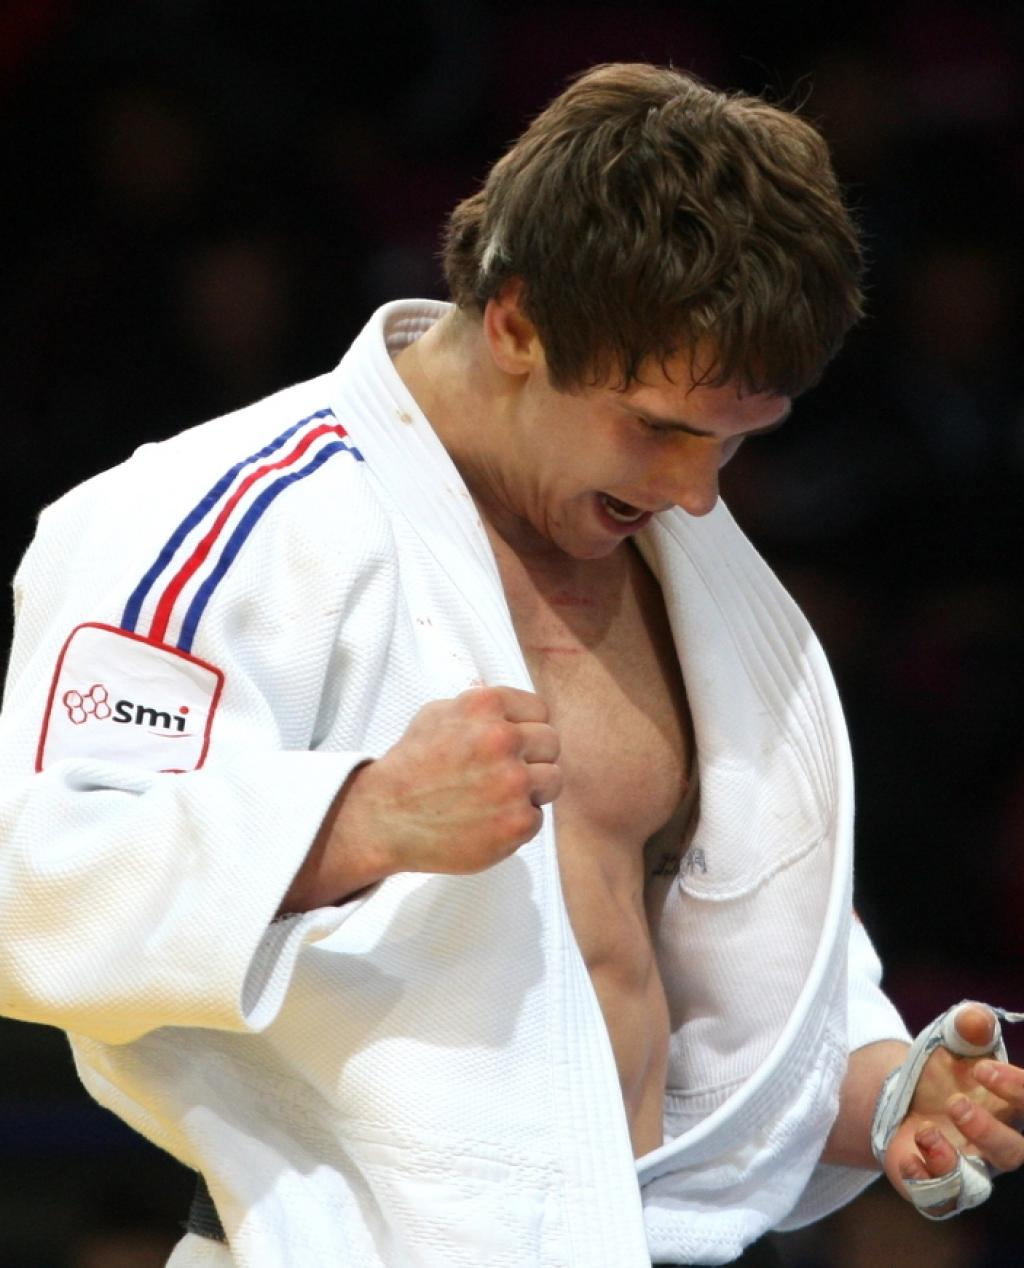 French youngsters take gold in Warsaw